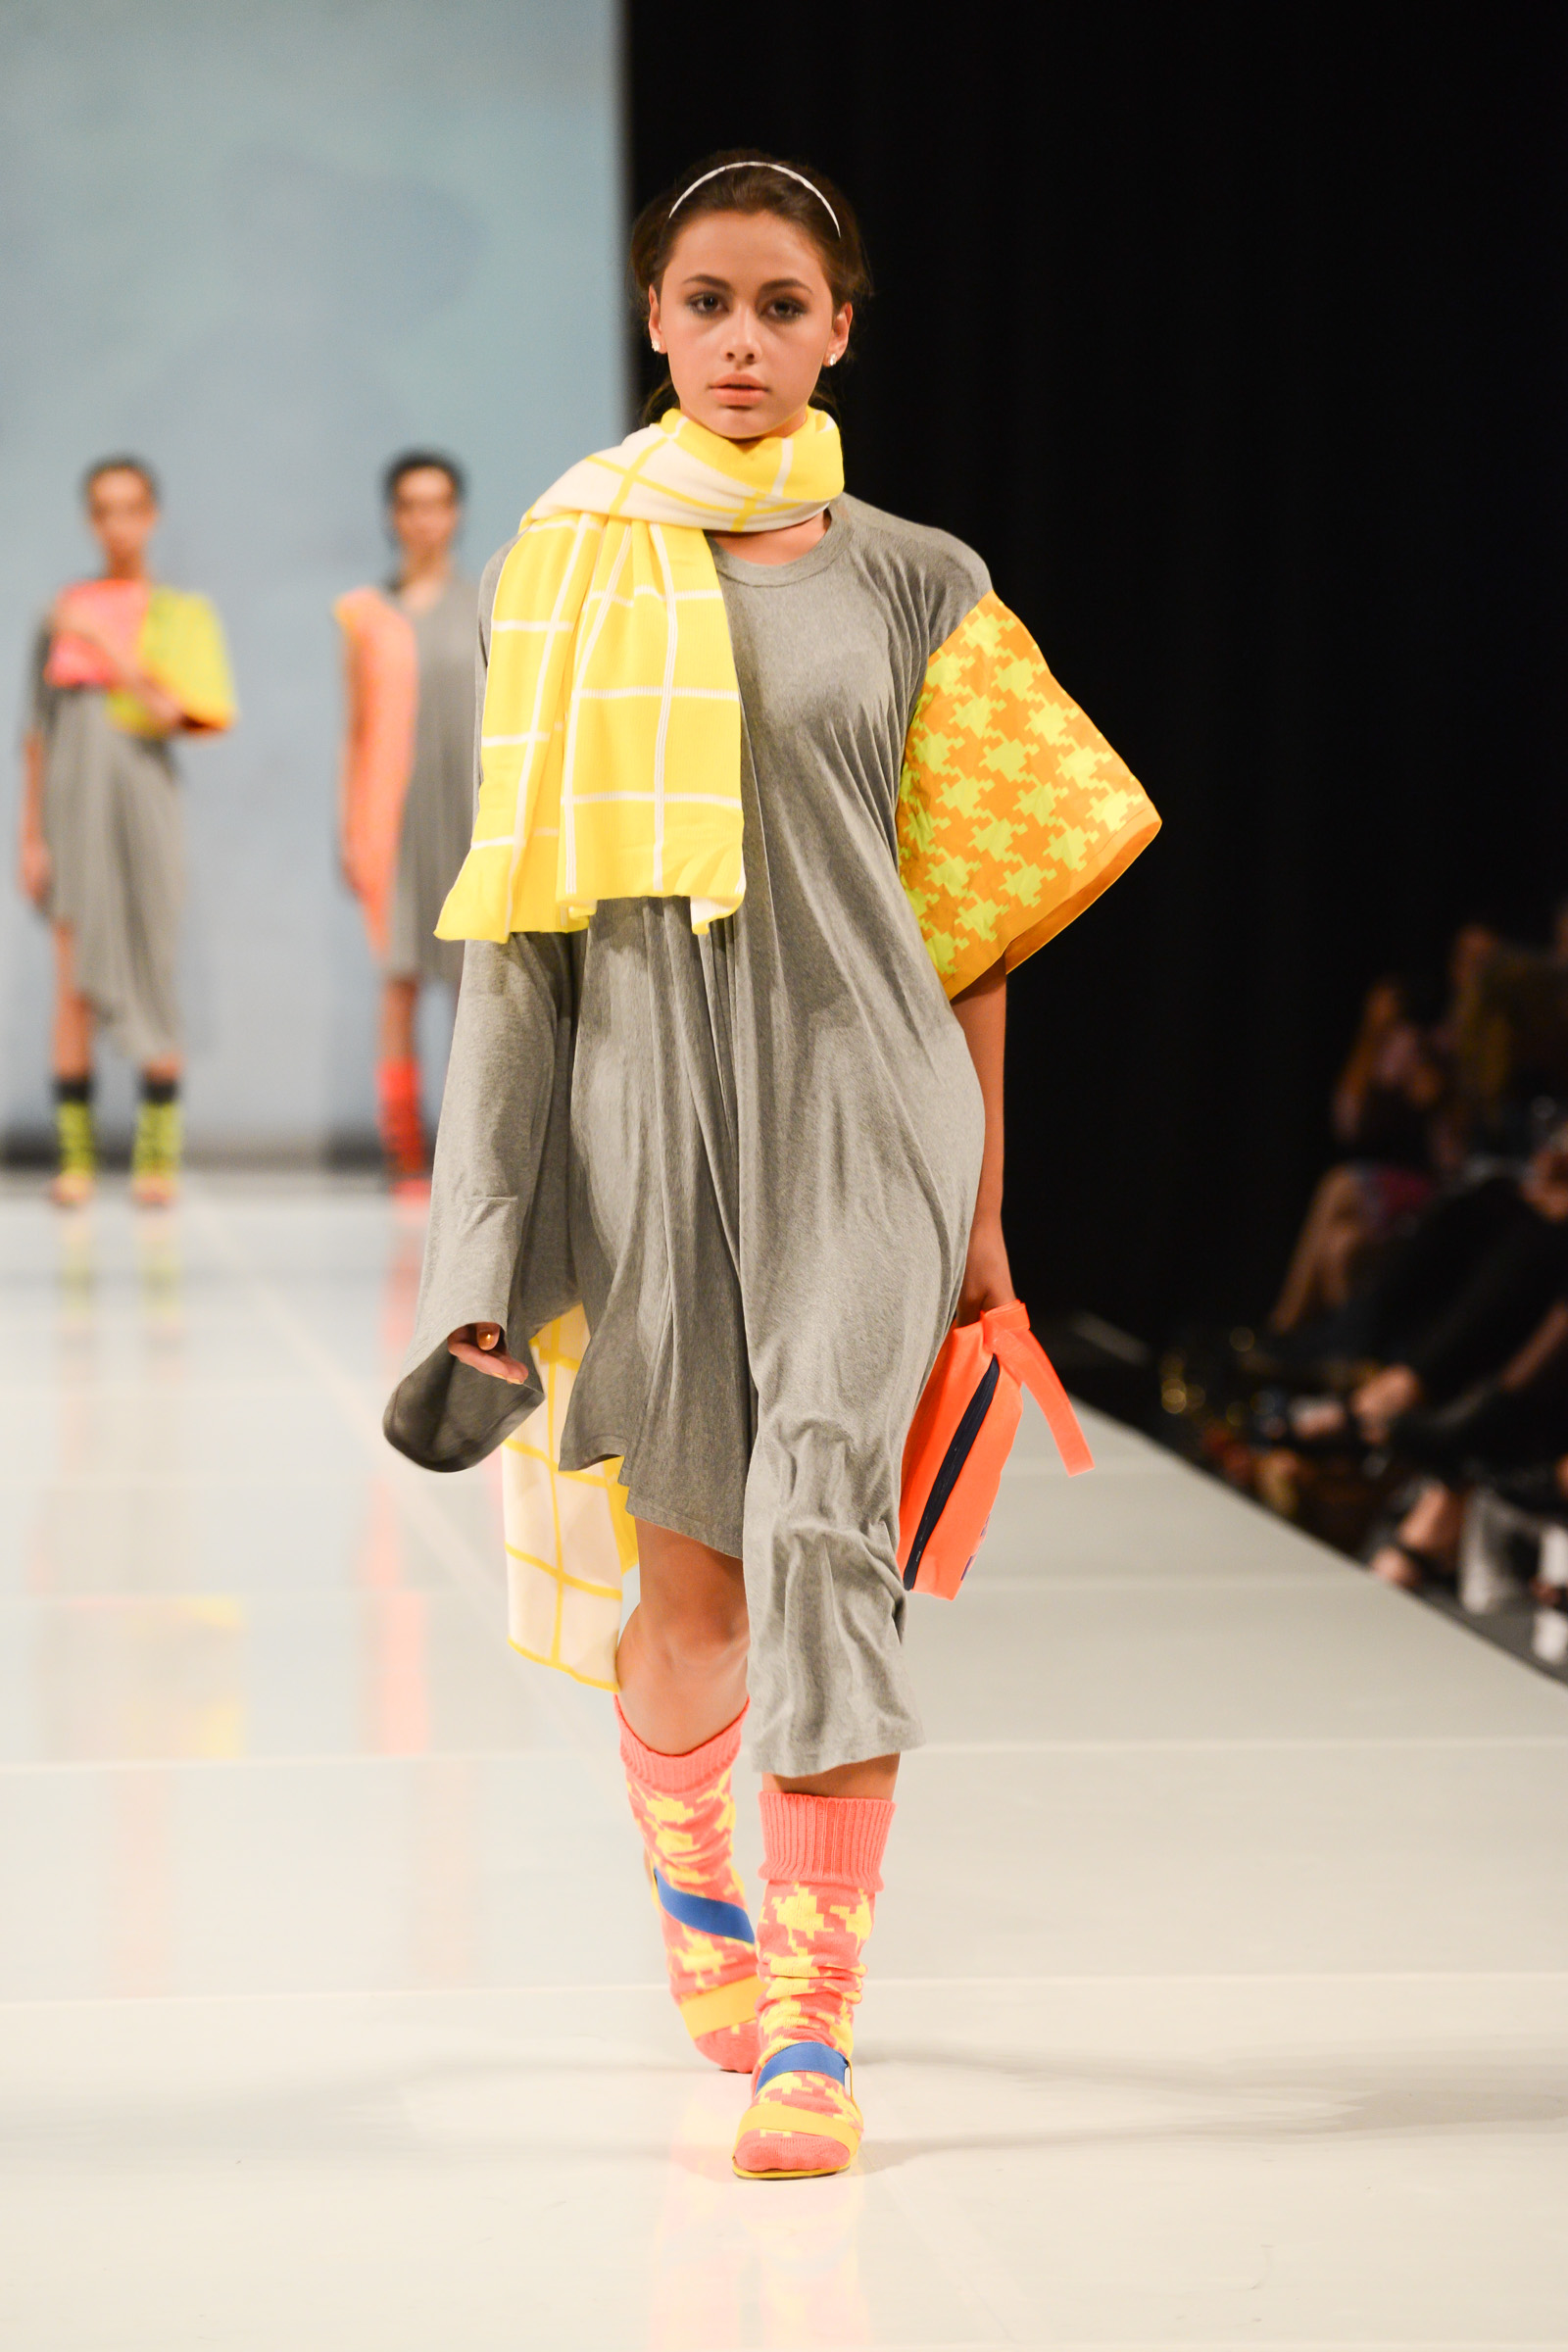 id2013_emerging_richard_mccoy_0013.jpg